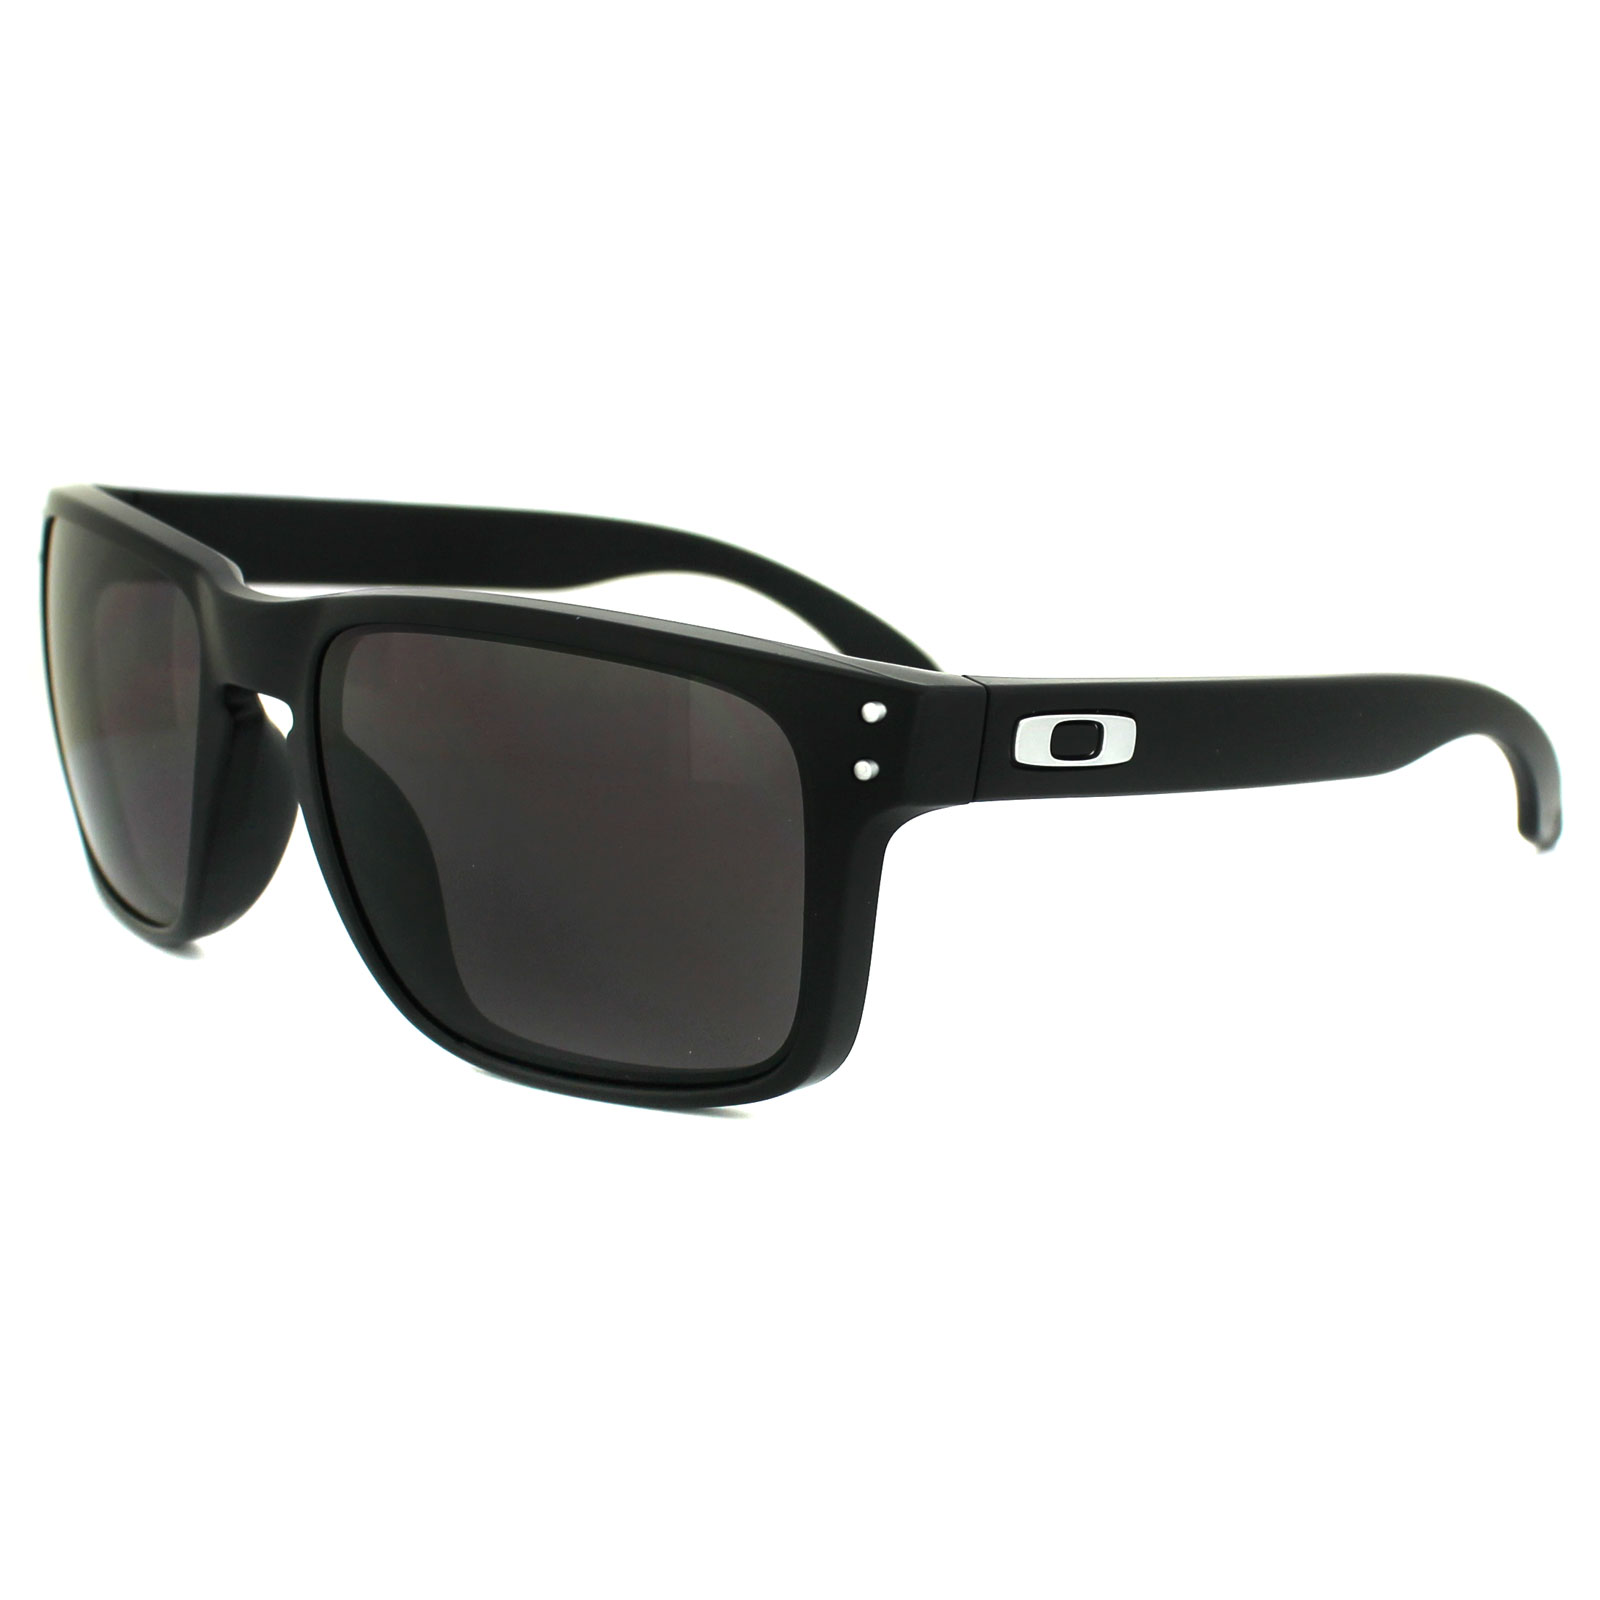 idcyi Cheap Oakley Holbrook Sunglasses - Discounted Sunglasses